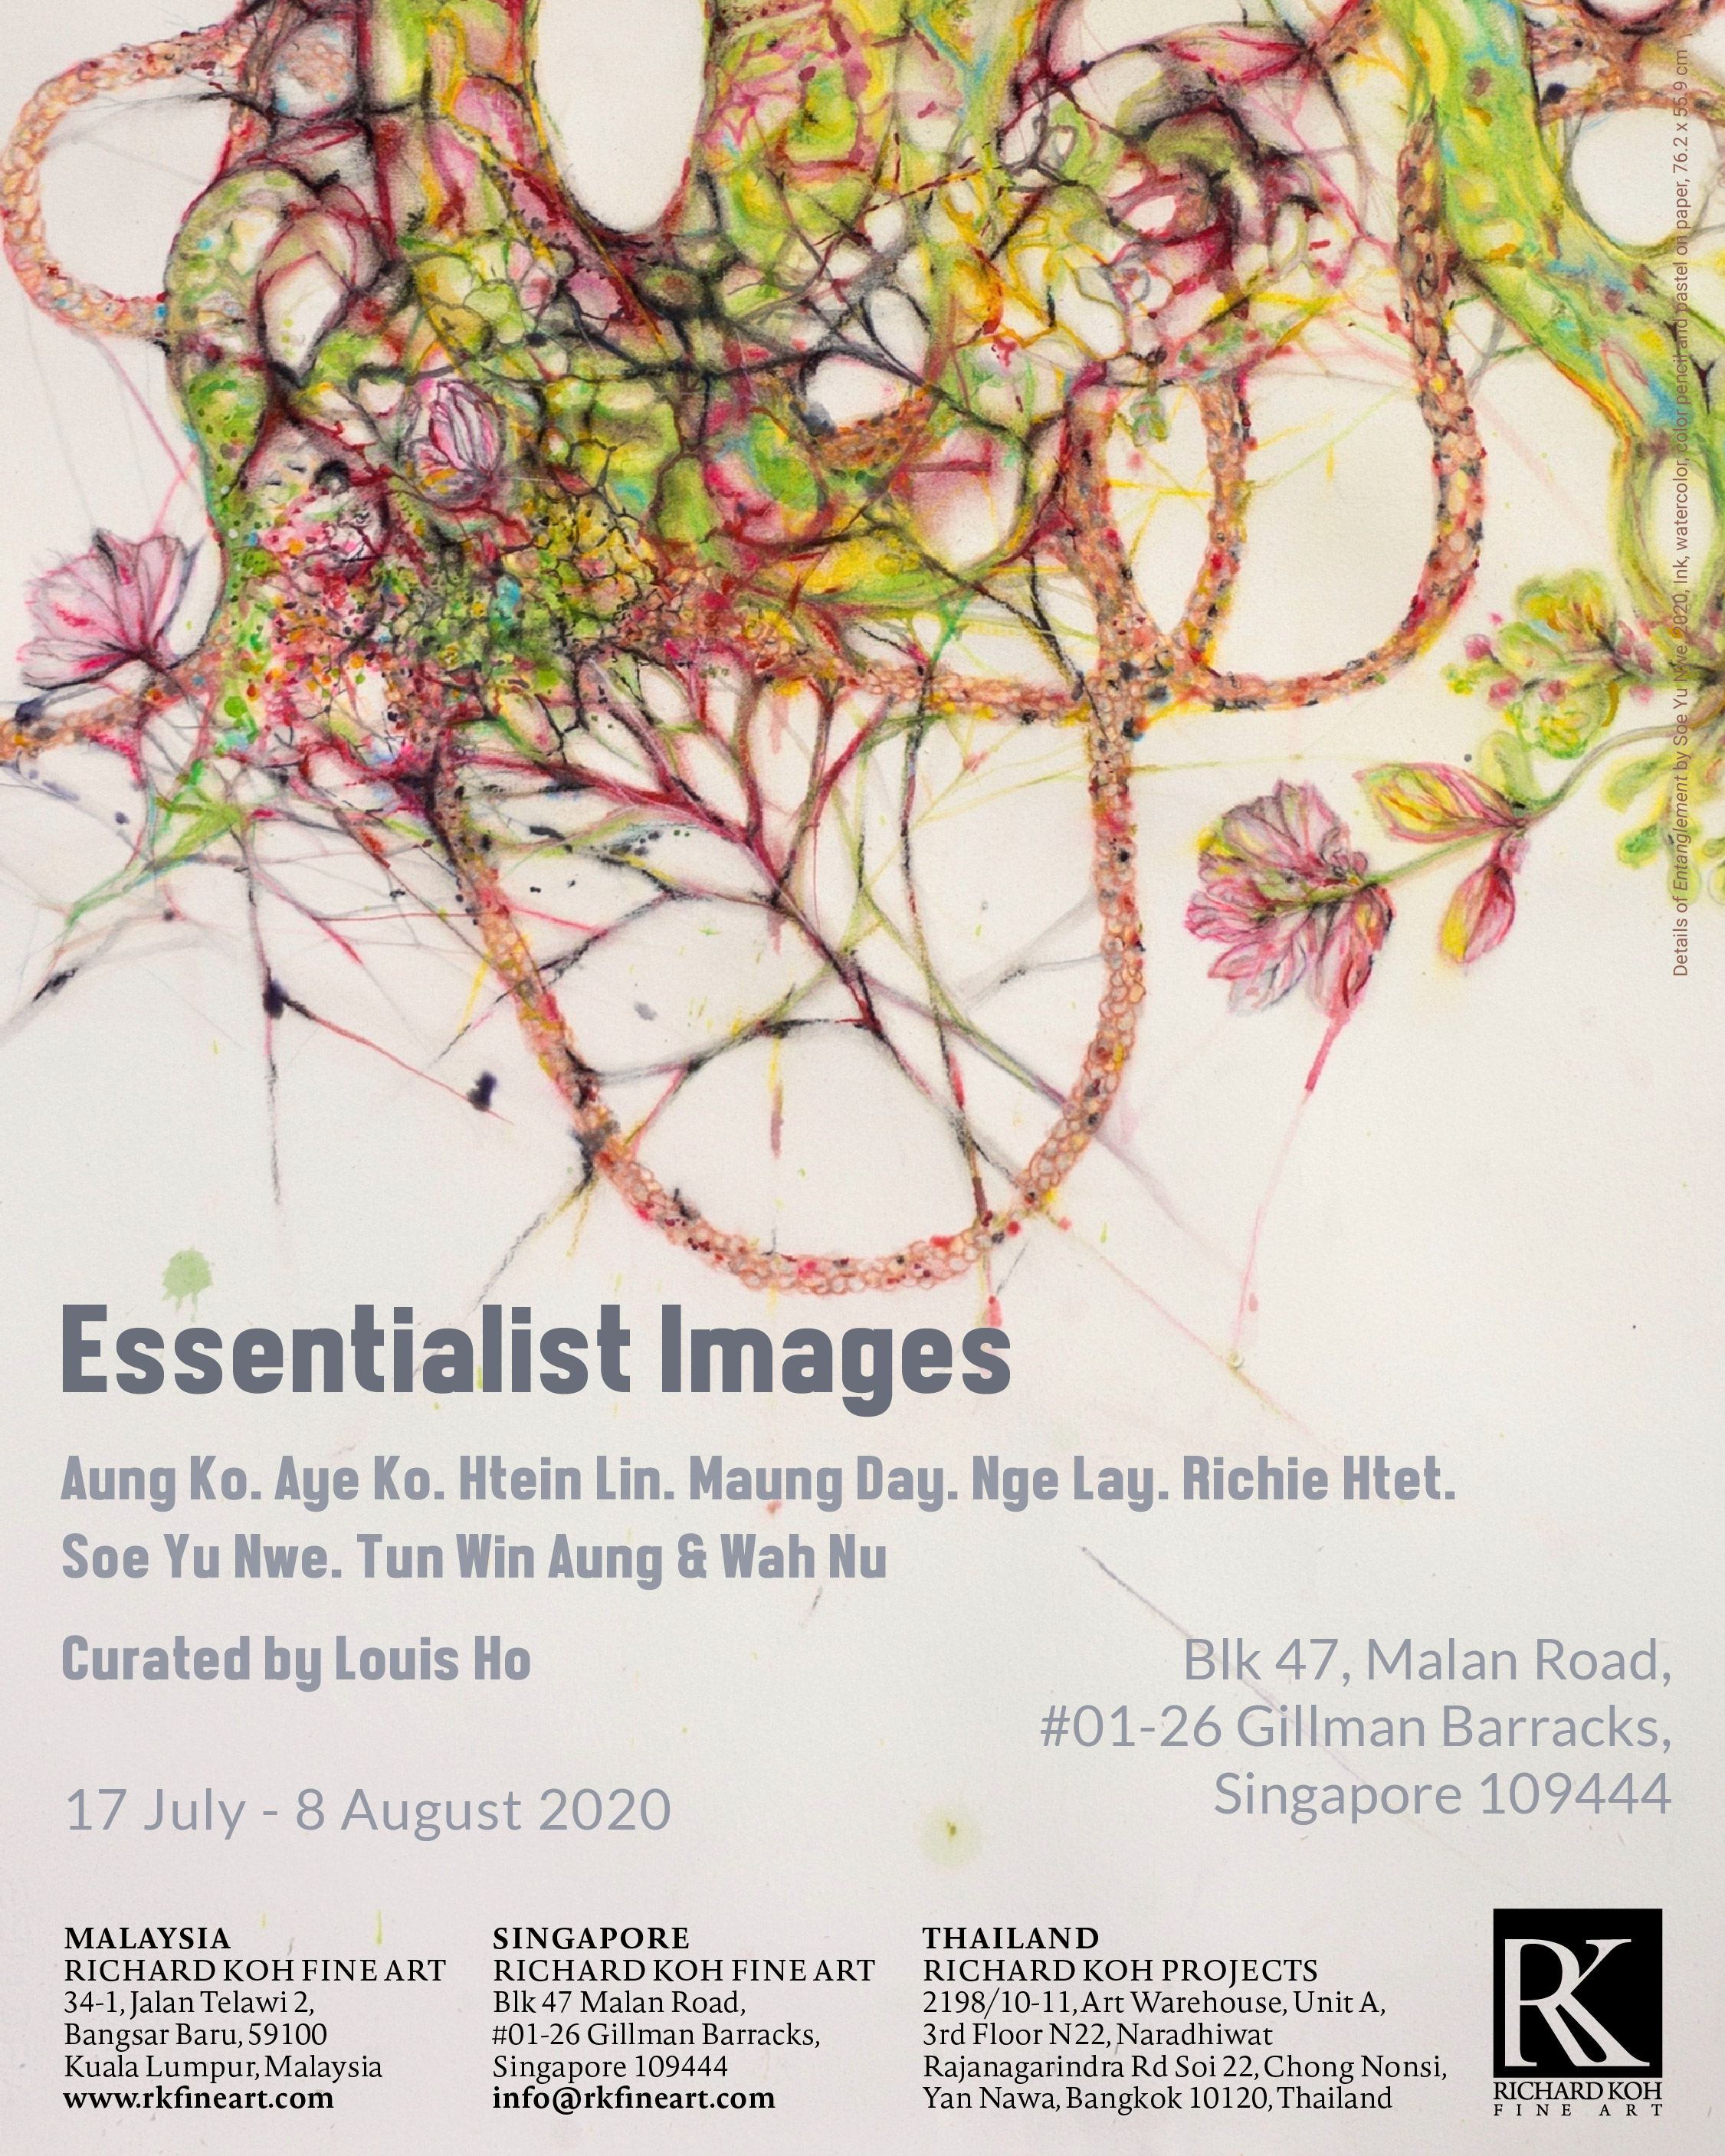 Aung Ko, Aye Ko, Htein Lin, Maung Day, Nge Lay, Richie Htet, Soe Yu Nwe, Tun Win Aung & Wah Nu – Essentialist Images (Curated by Louis Ho)